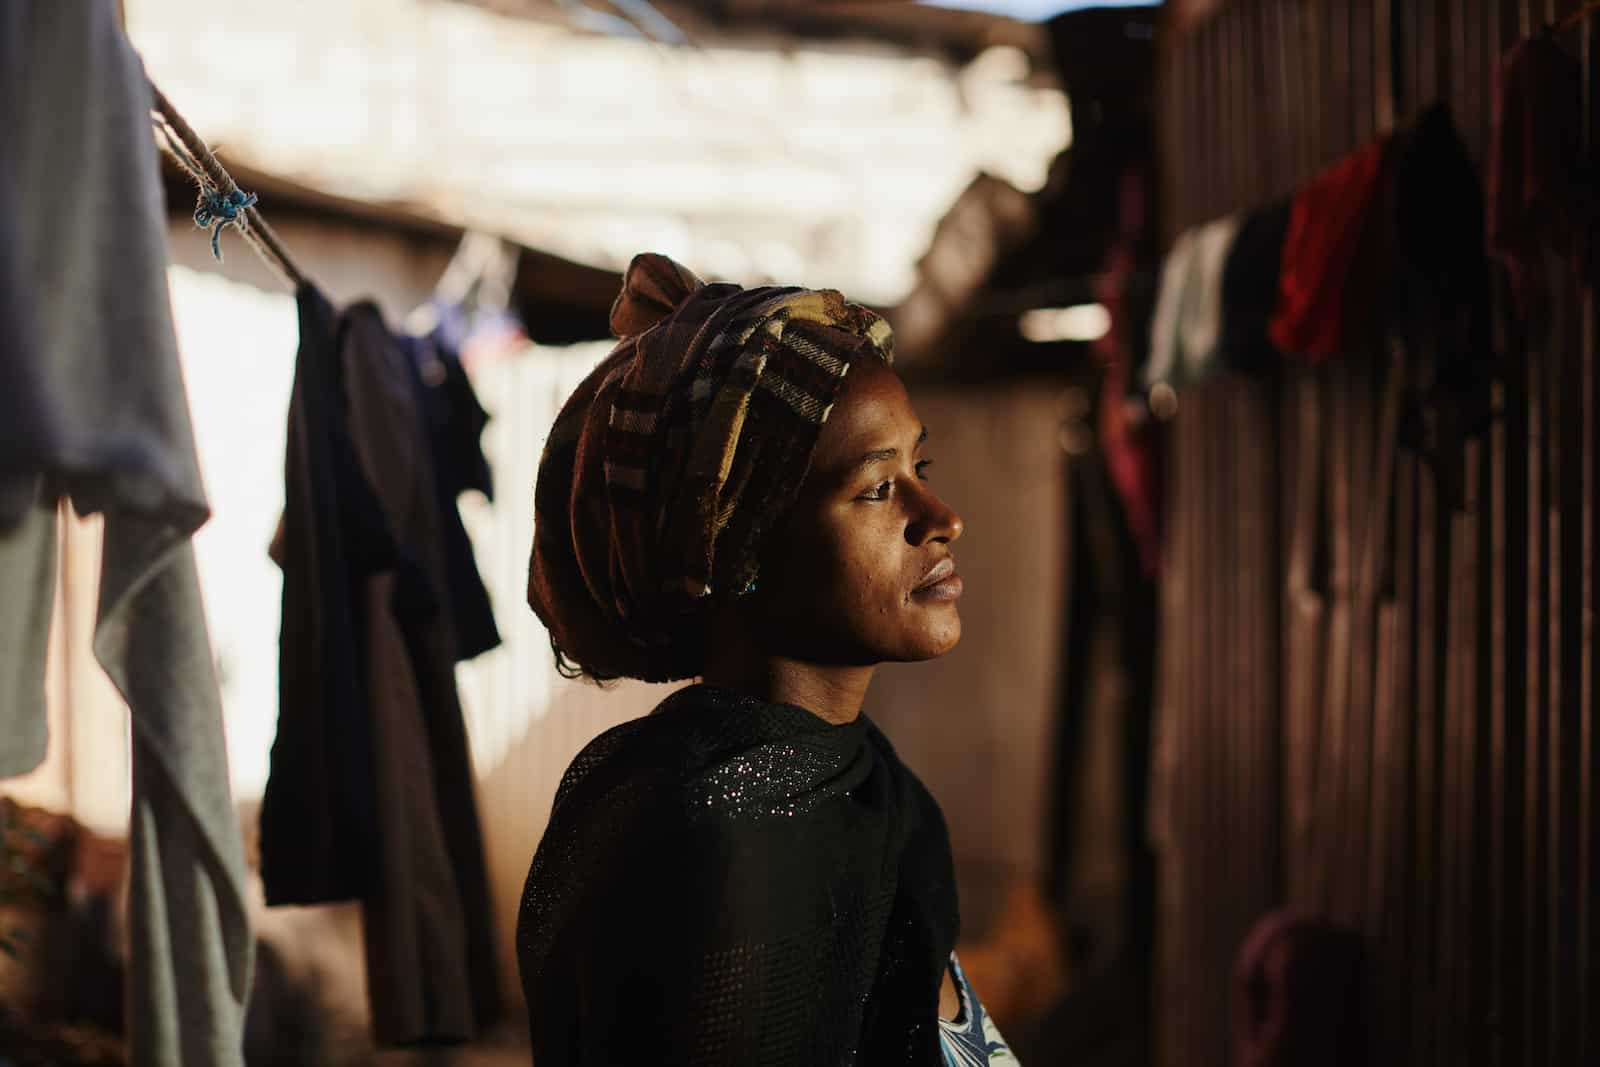 A woman wearing a plaid headscarf and black shawl looks to the side. She stands in a dark alley with laundry hanging on the line.